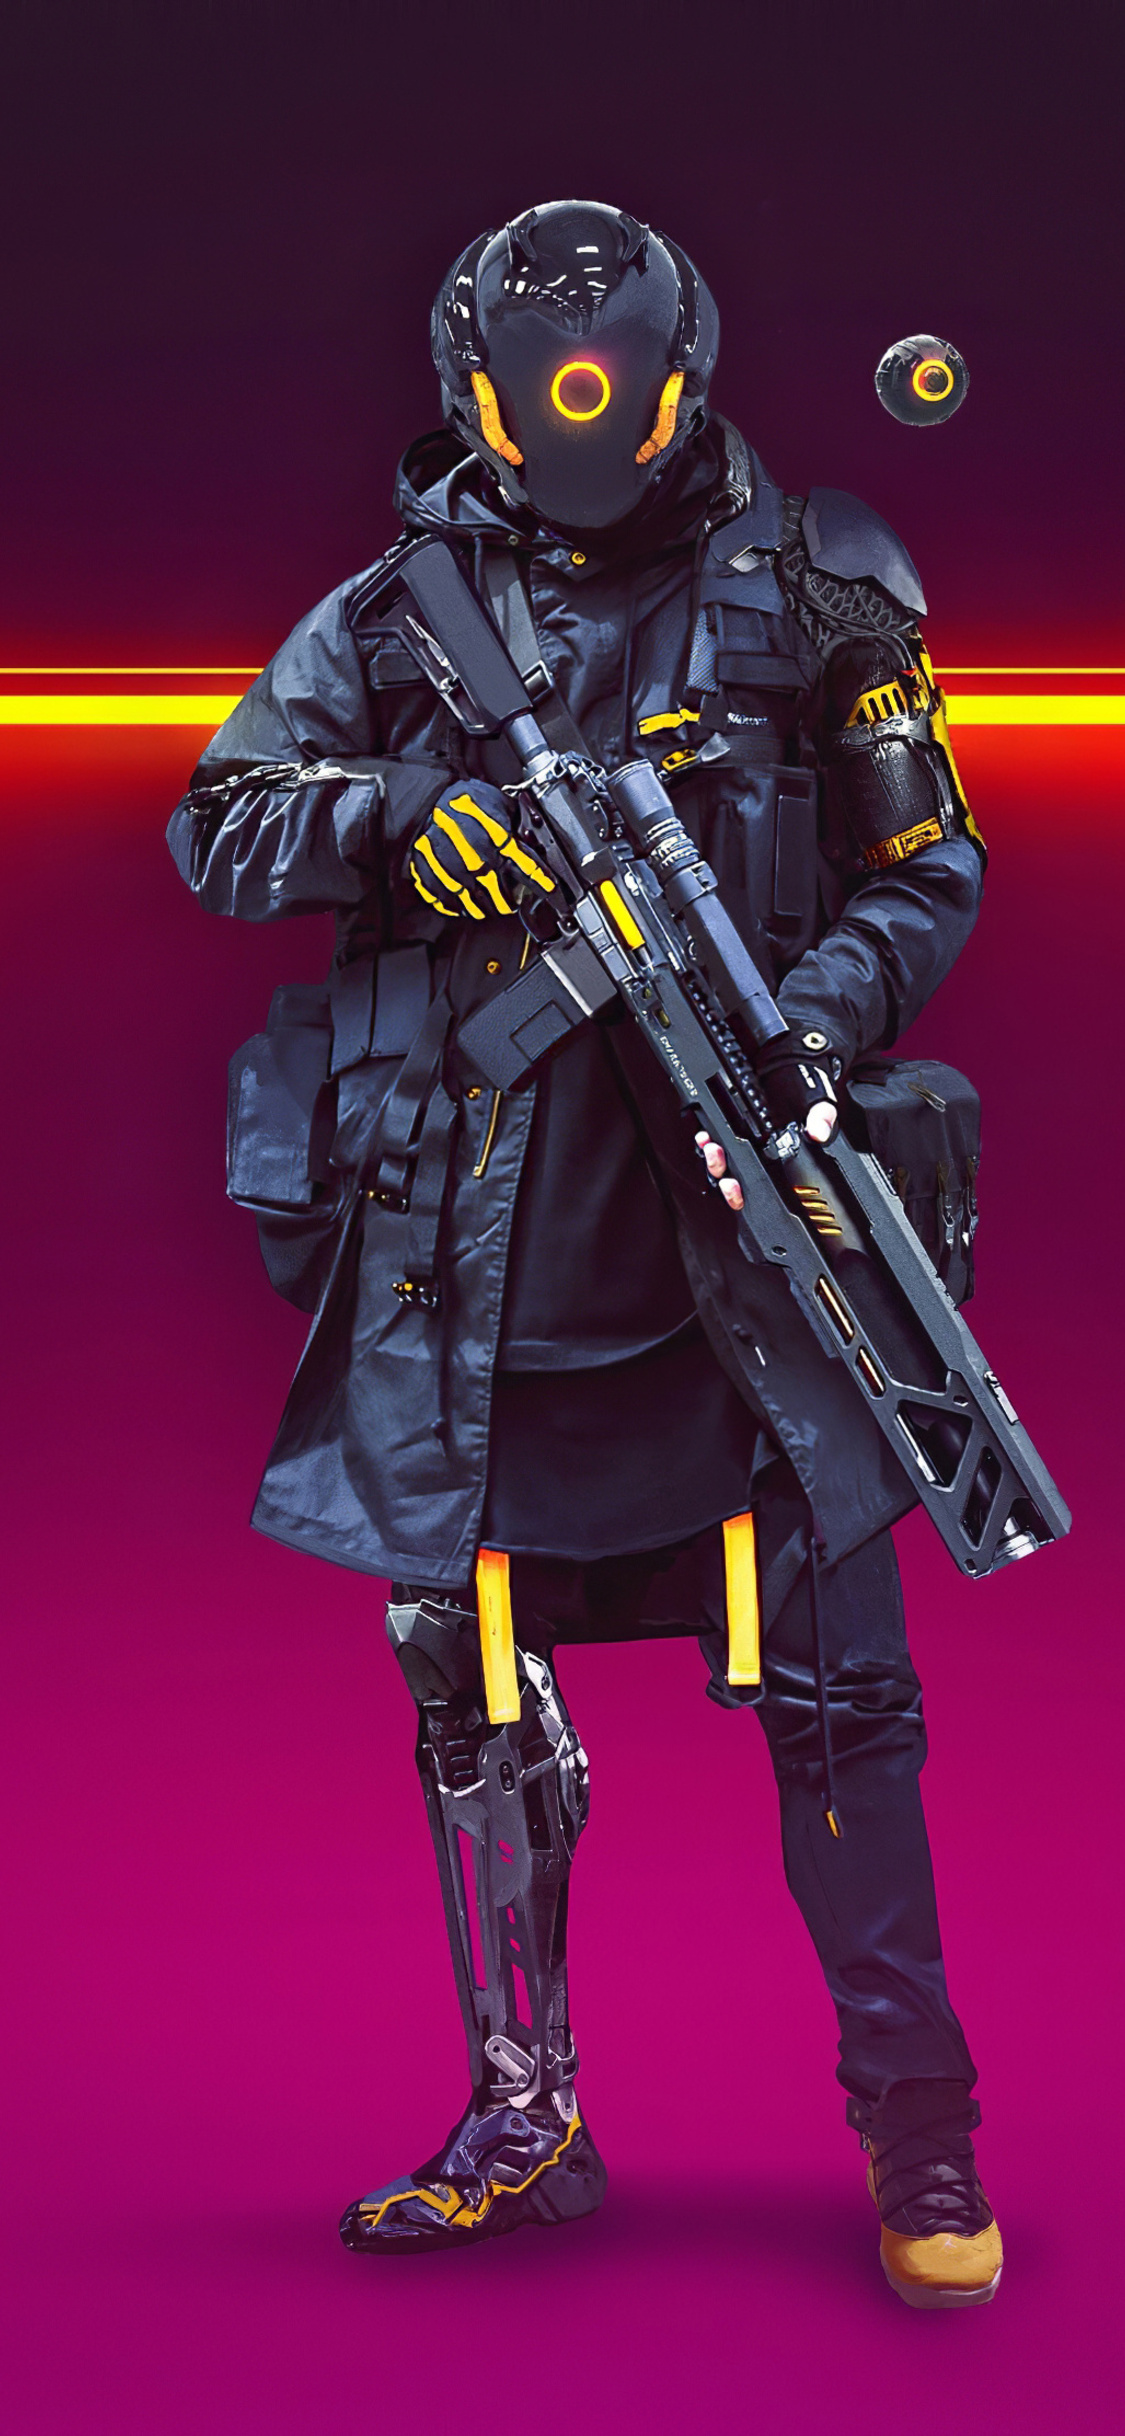 1125x2436 Cyberpunk Soldier Turbo Police 4k Iphone Xs Iphone 10 Iphone X Hd 4k Wallpapers Images Backgrounds Photos And Pictures